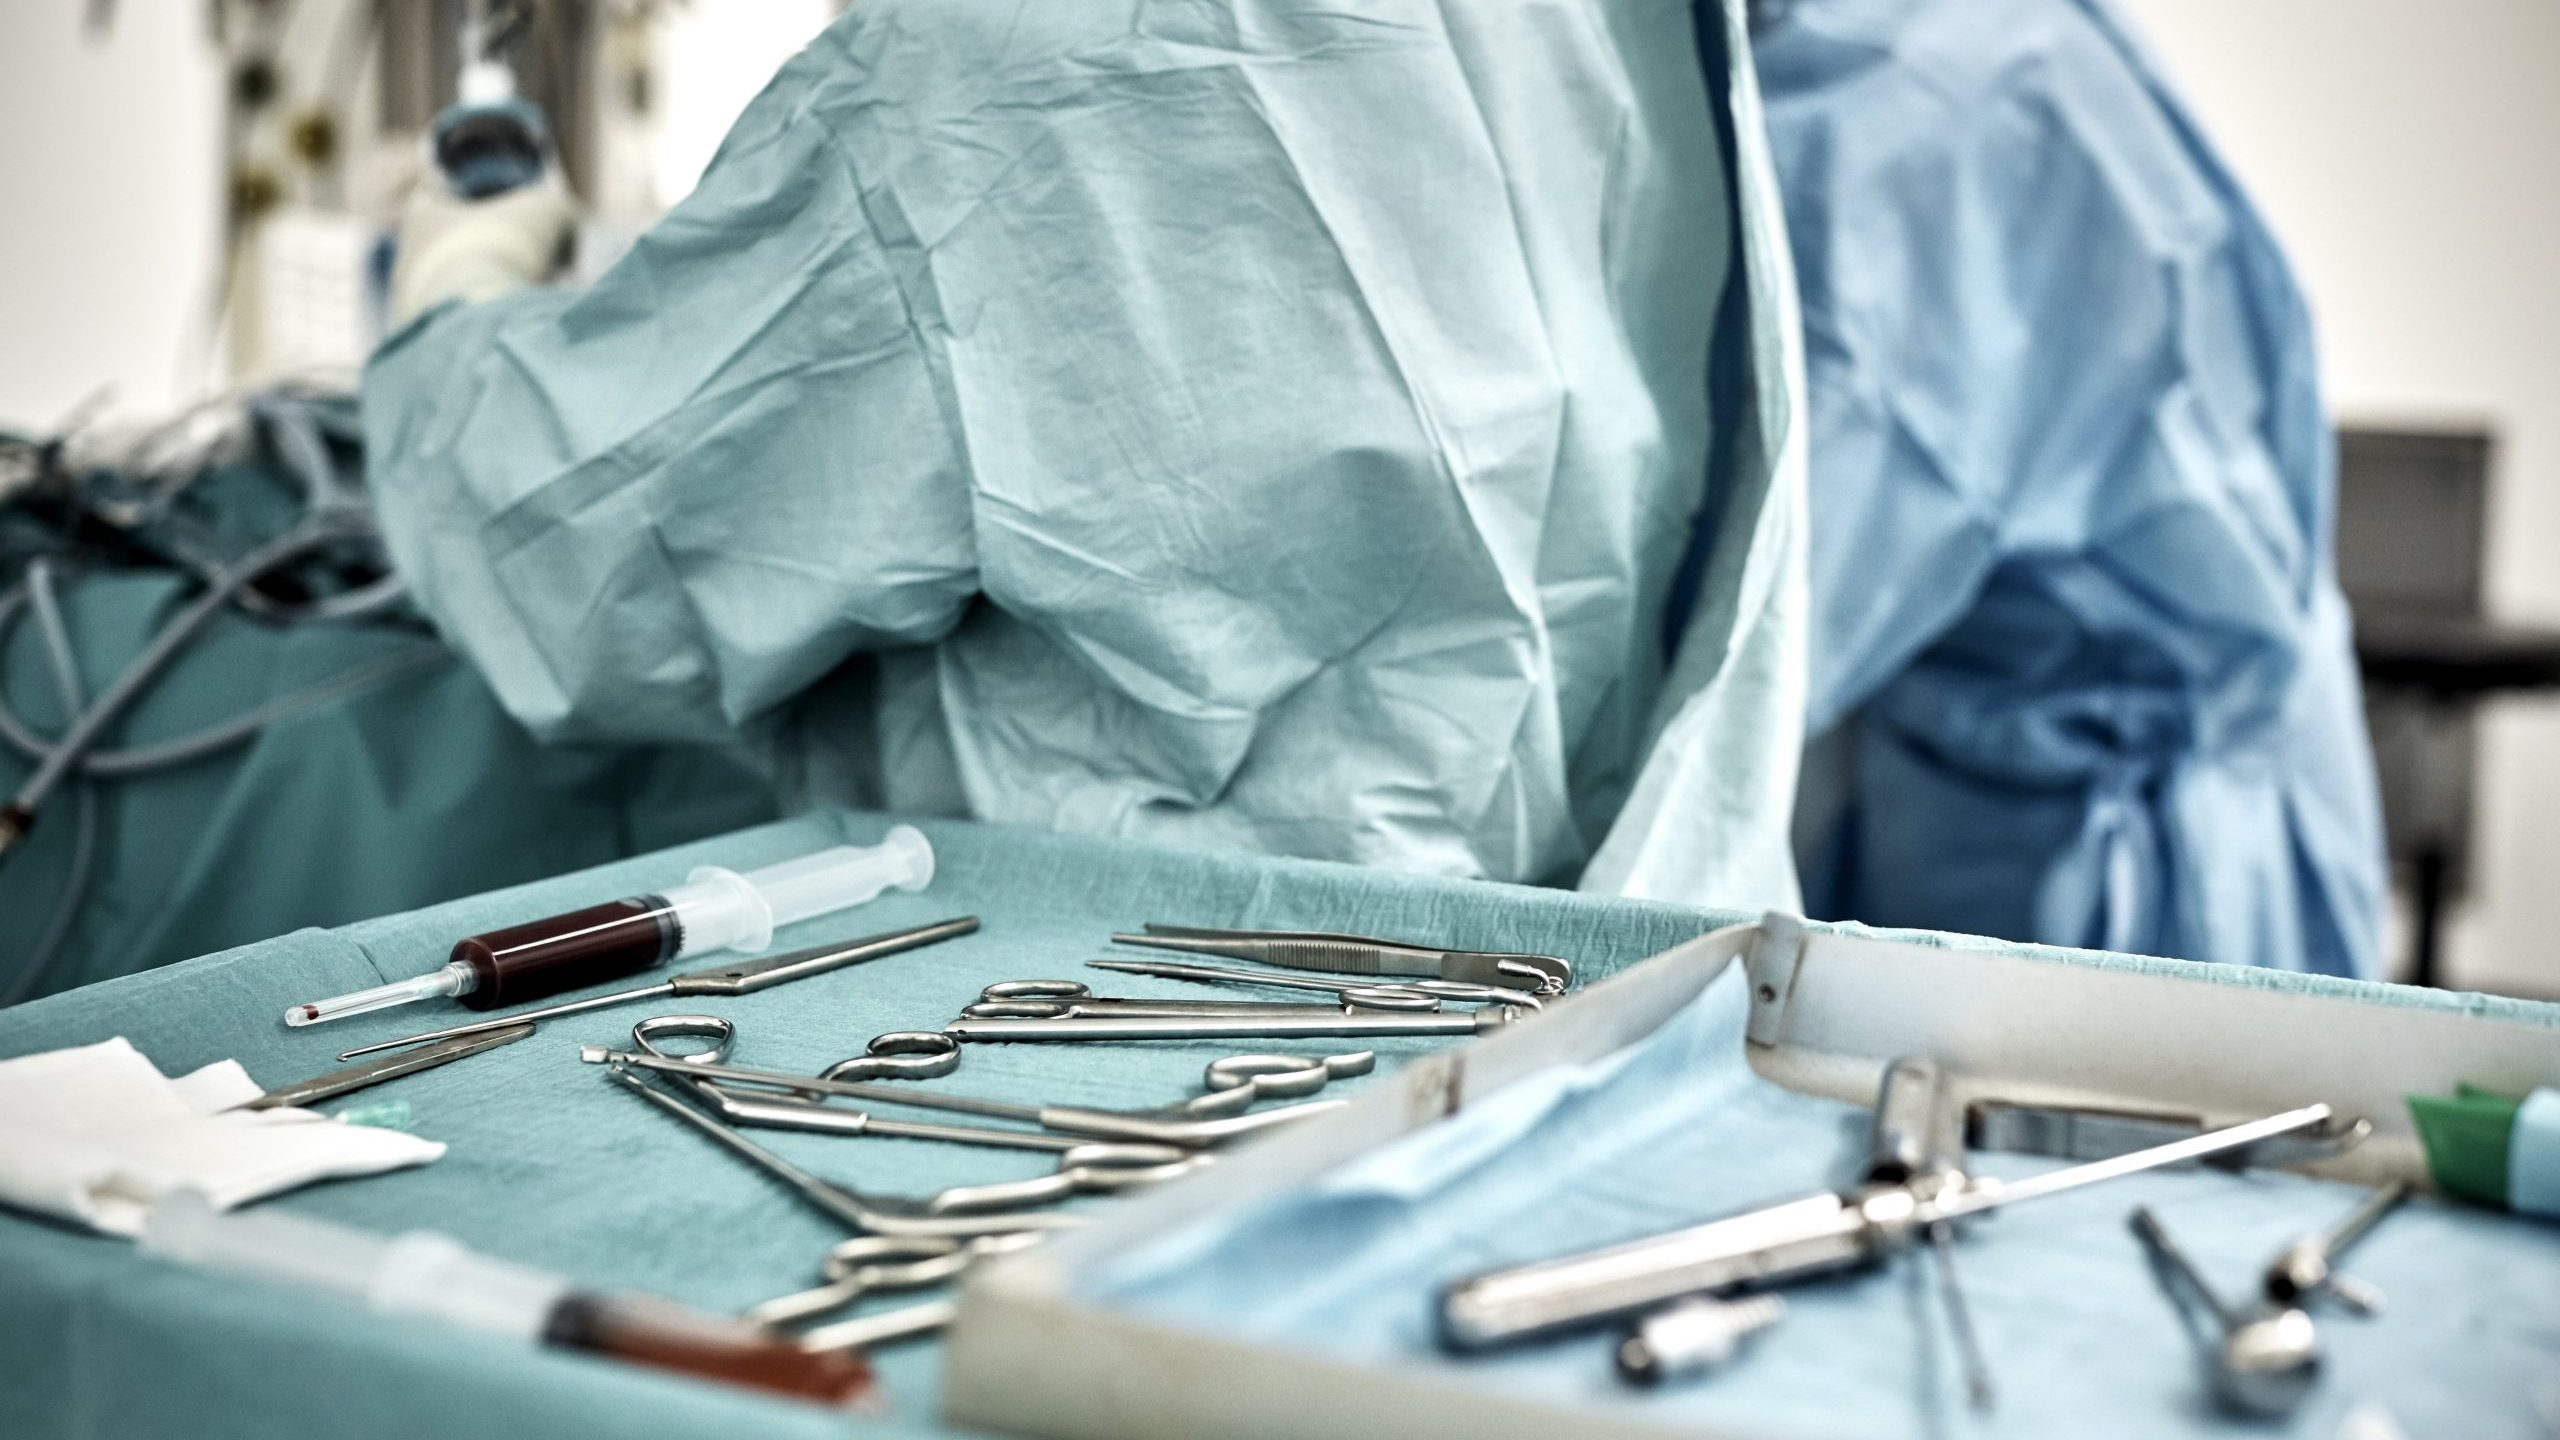 This file photo shows surgical equipment in tray on table. (Credit: Getty Images)